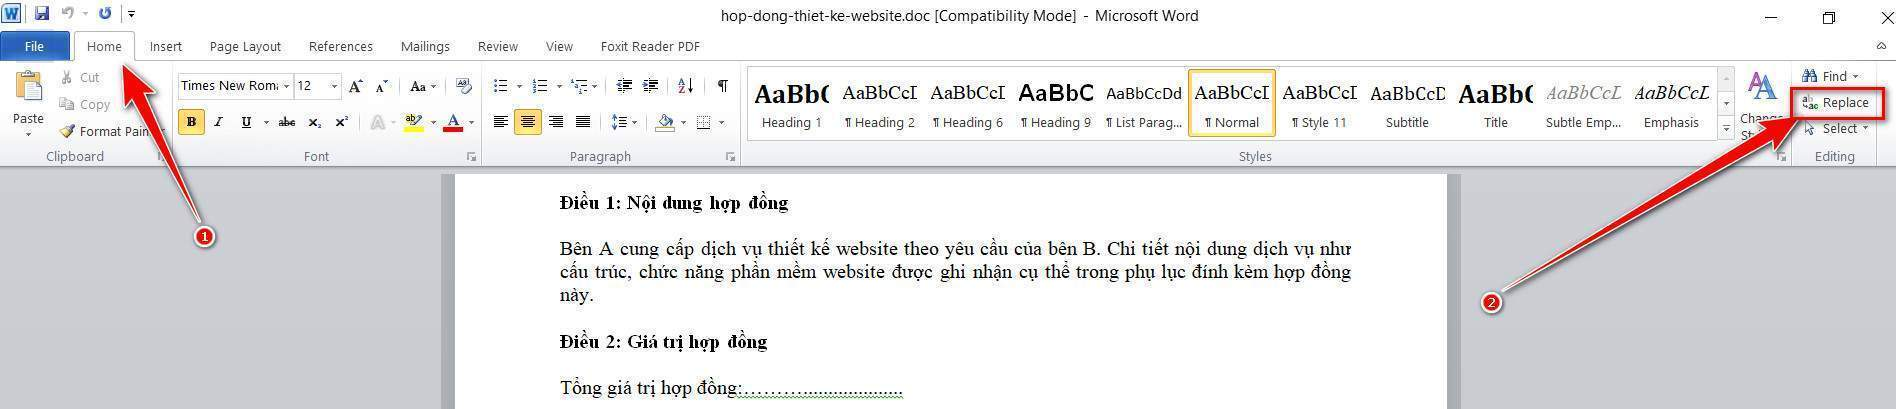 Chọn Replace trong Homepage